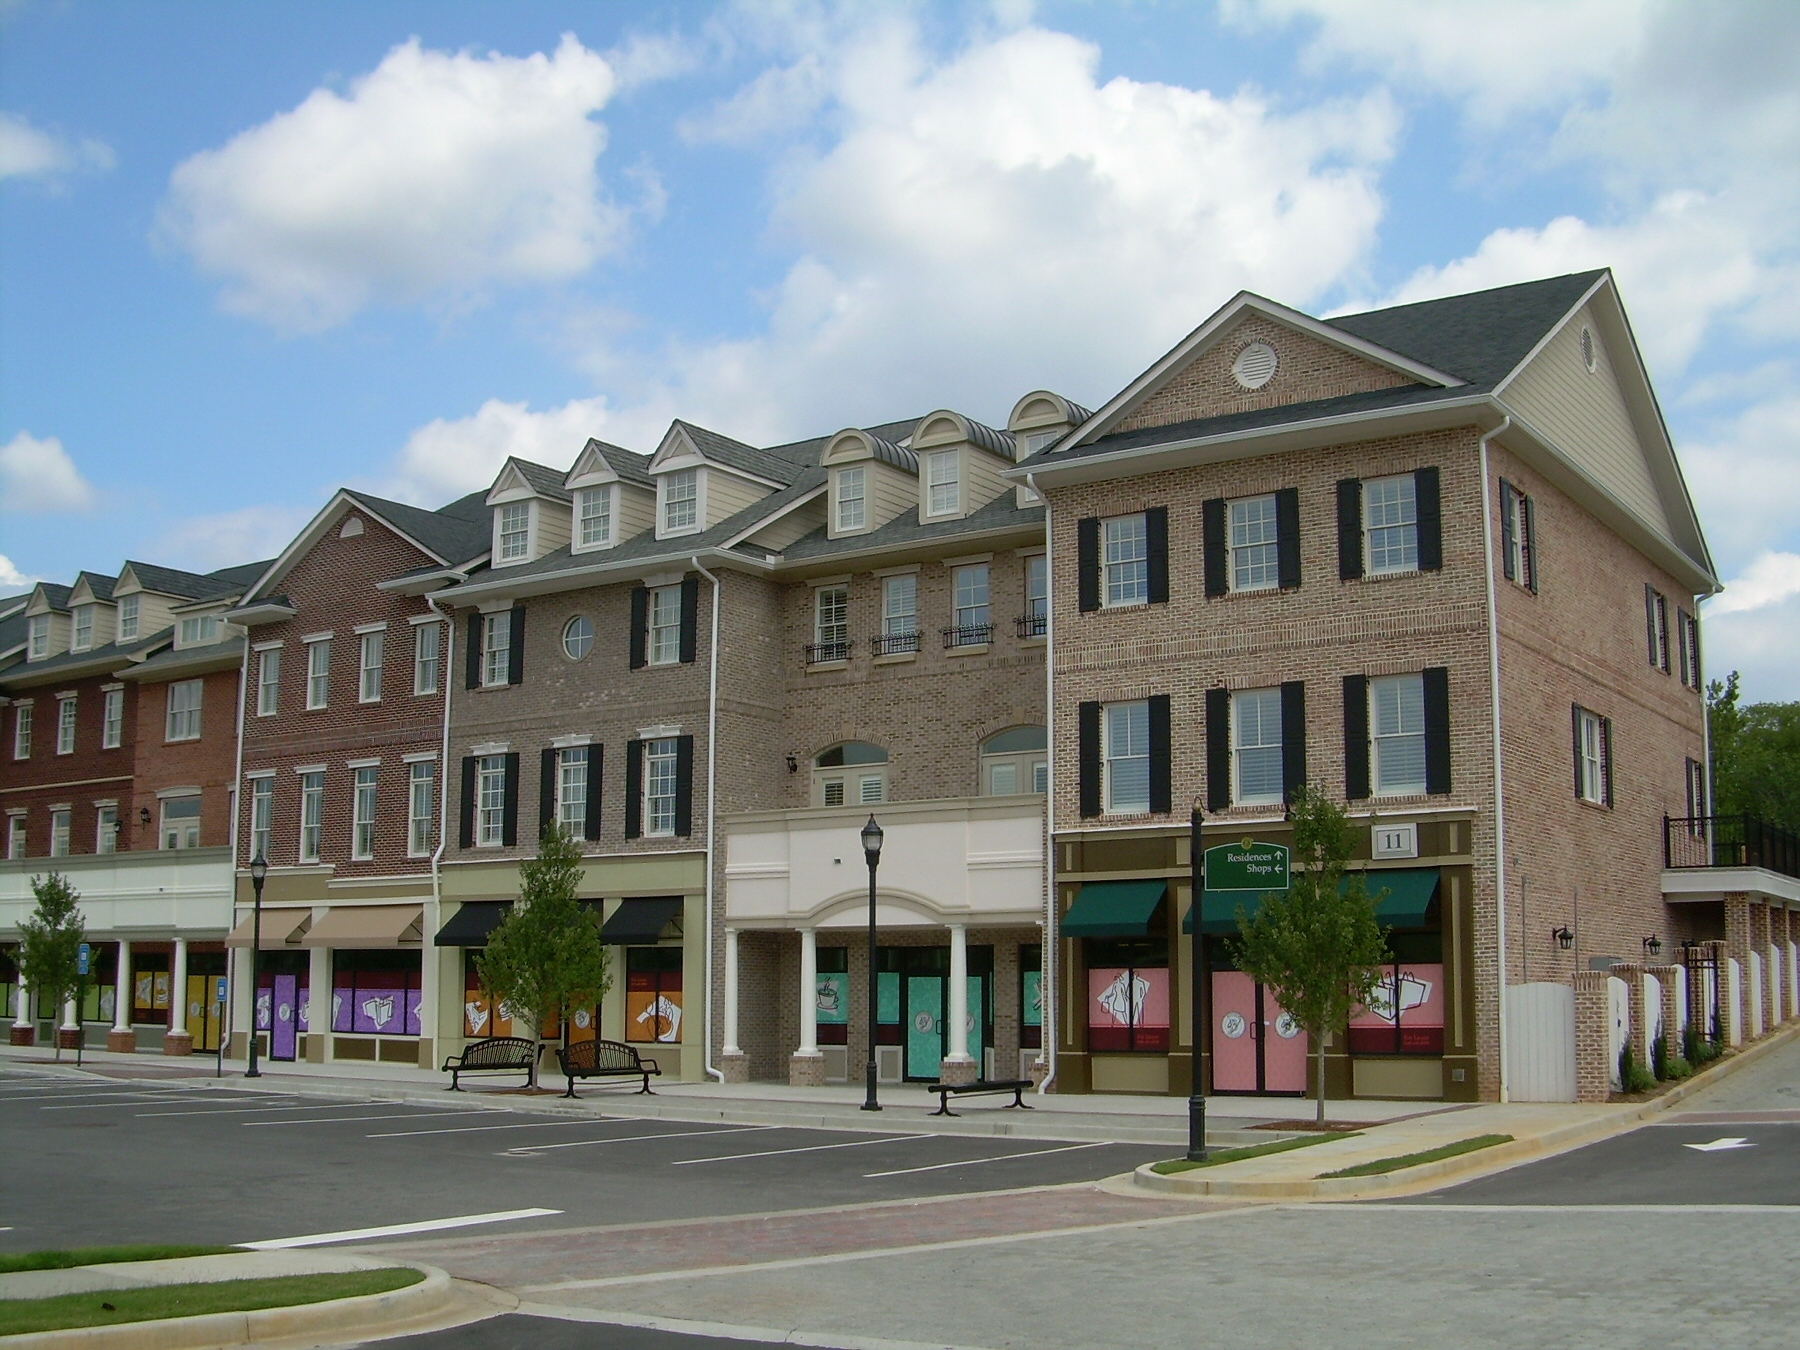 Atlanta_MixedUse_Buford Village_Burford, GA